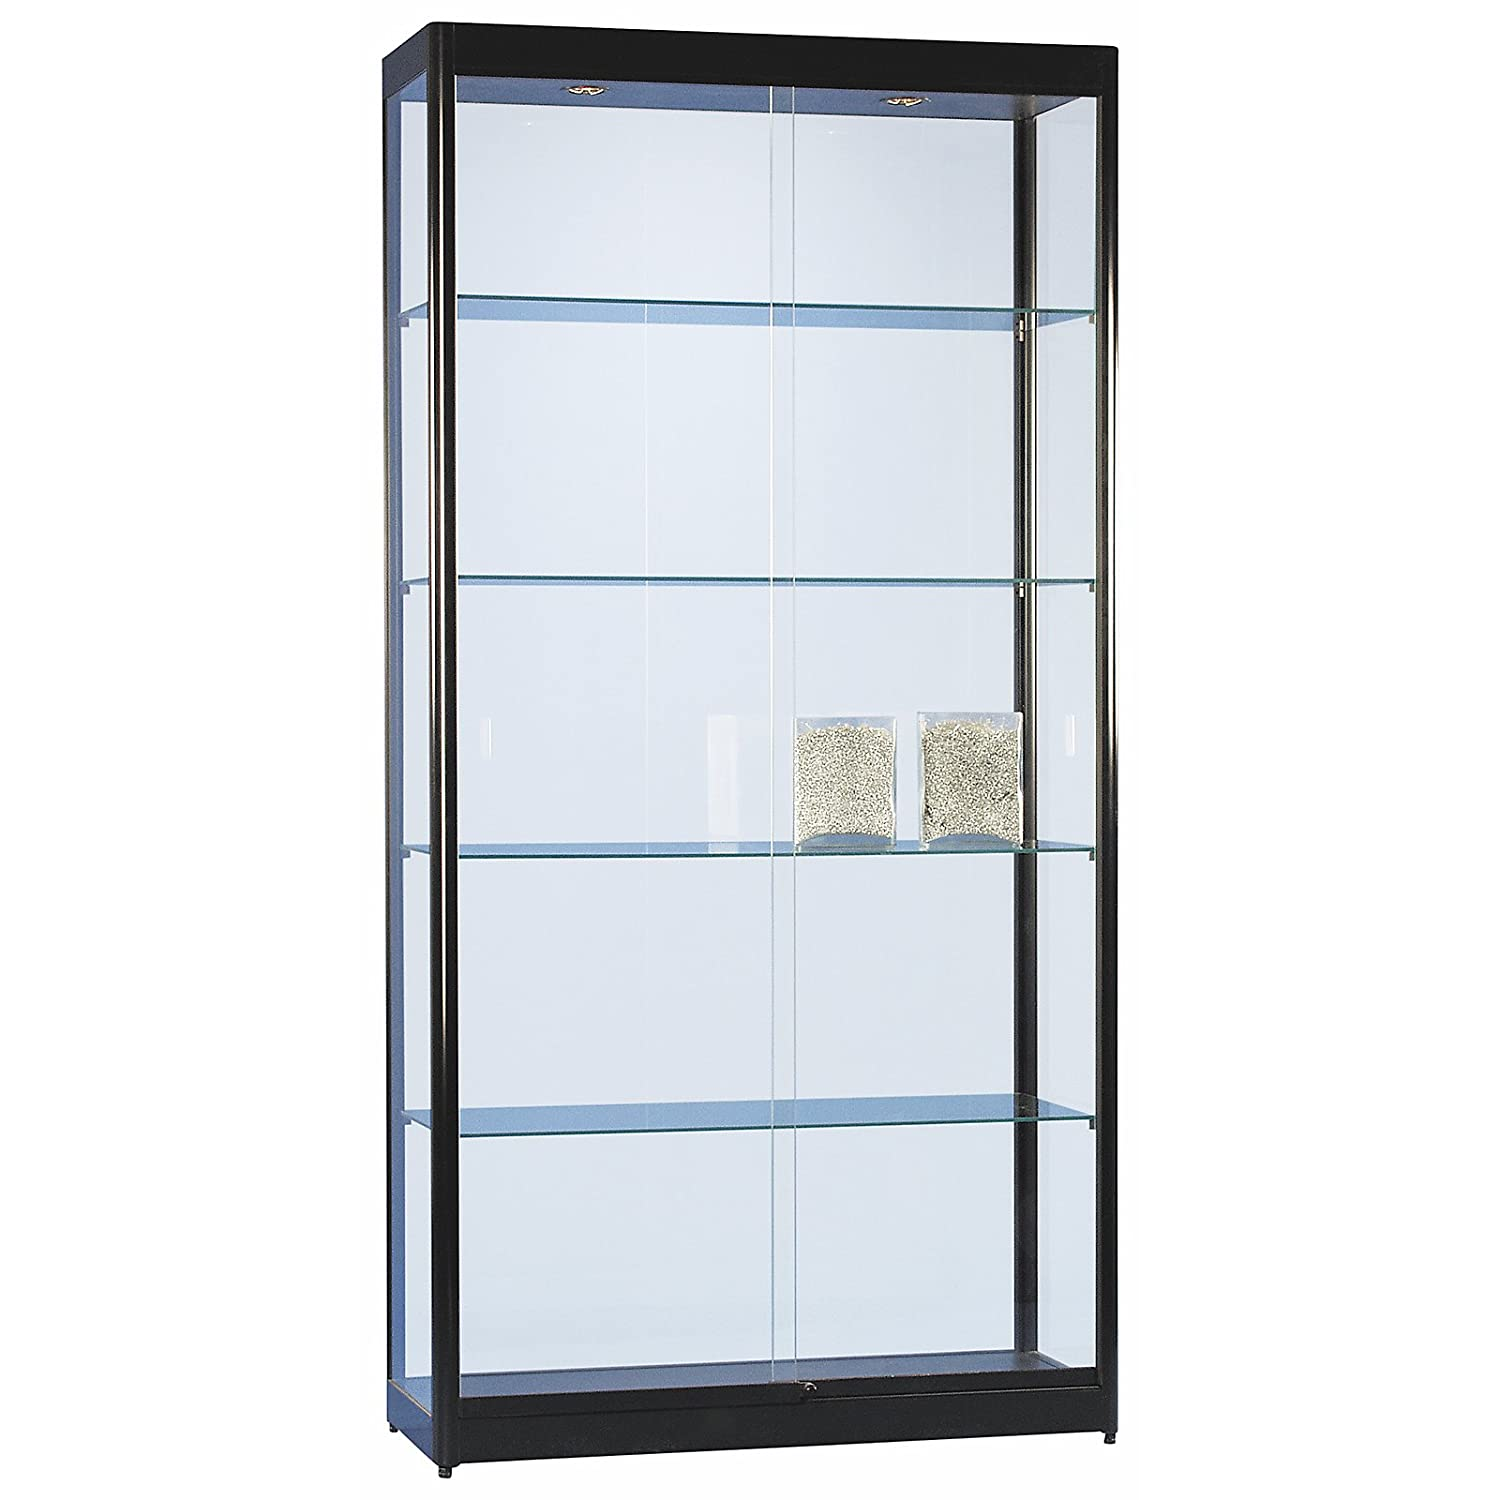 vitrine glasvitrine standvitrine sammlervitrine eco 1000 alu schwarz glas abschlie bar. Black Bedroom Furniture Sets. Home Design Ideas